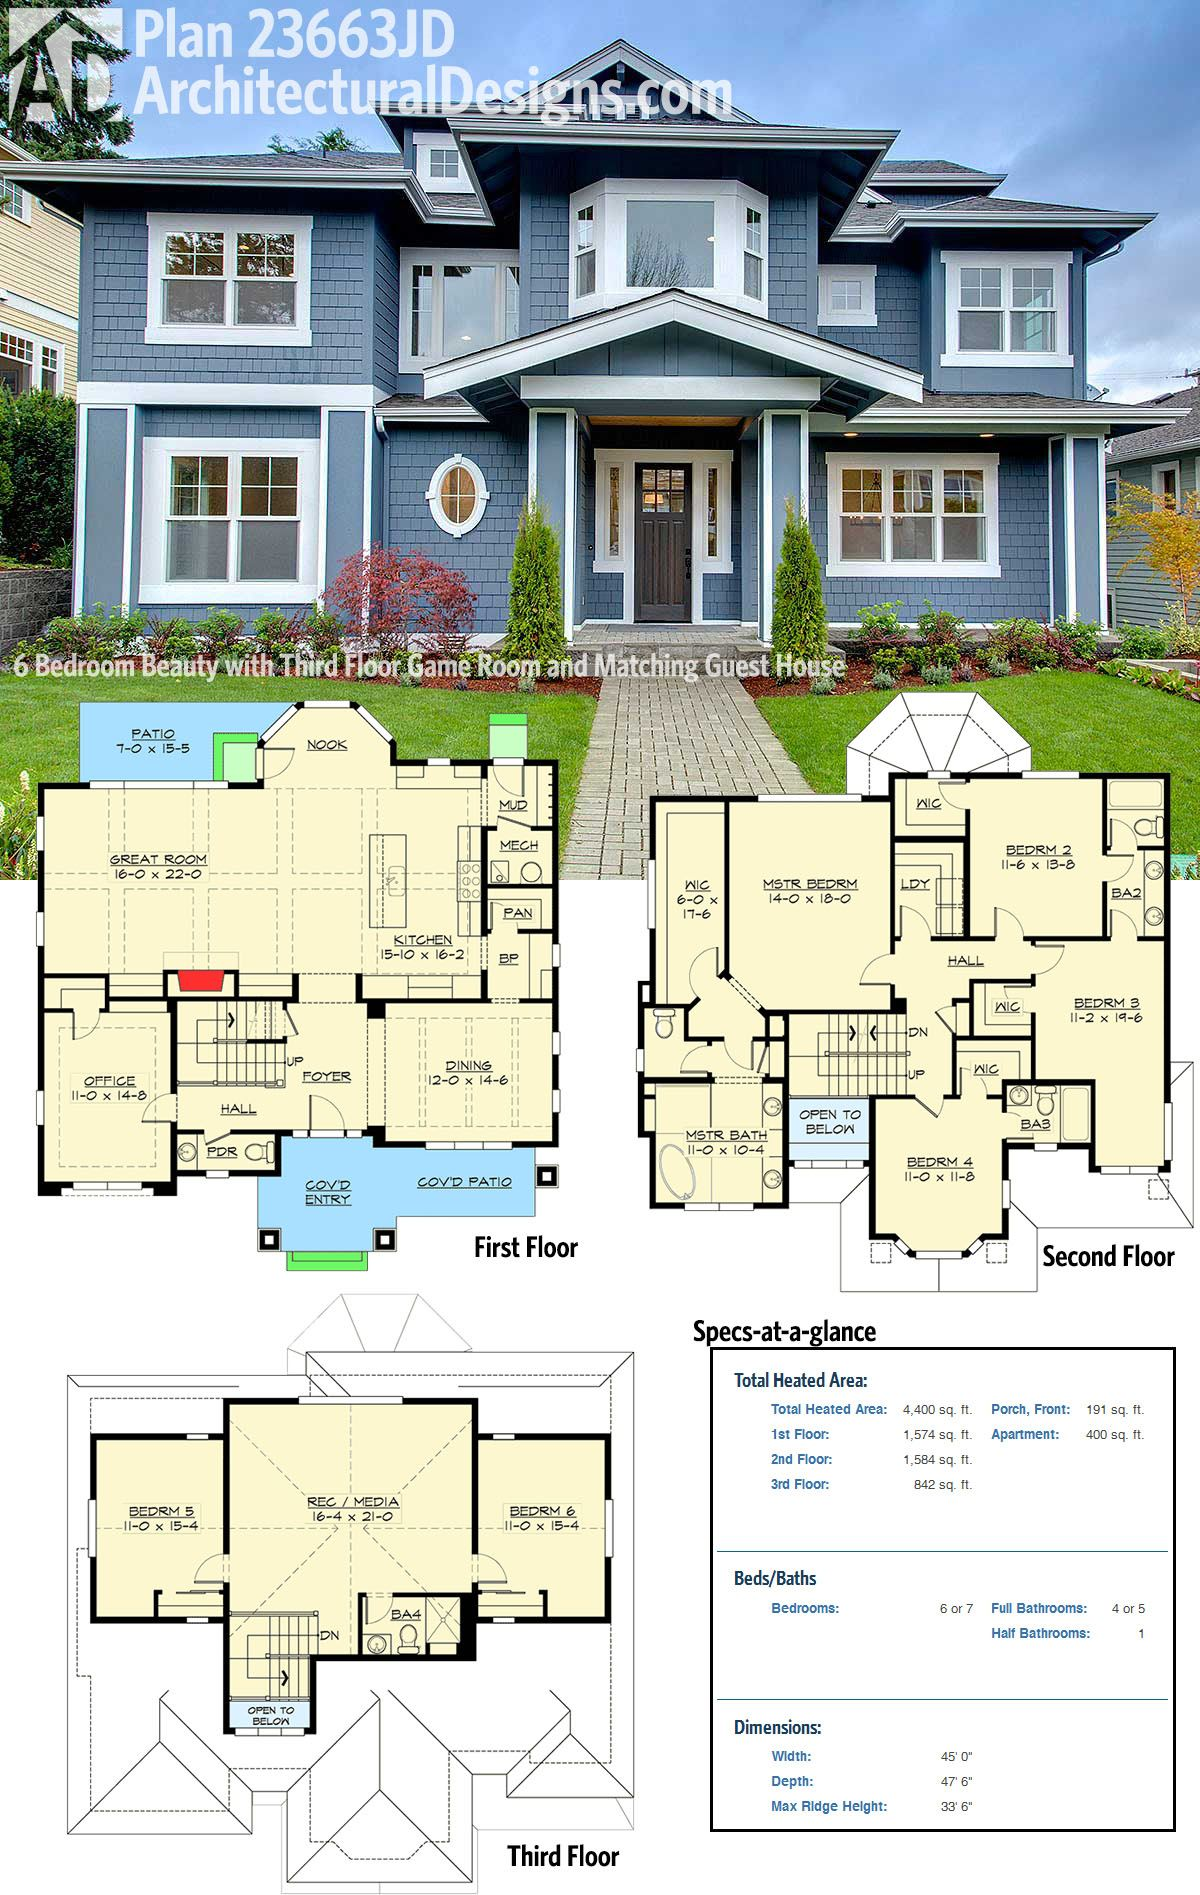 Plan 23663jd 6 bedroom beauty with third floor game room for Sketch plan for 2 bedroom house